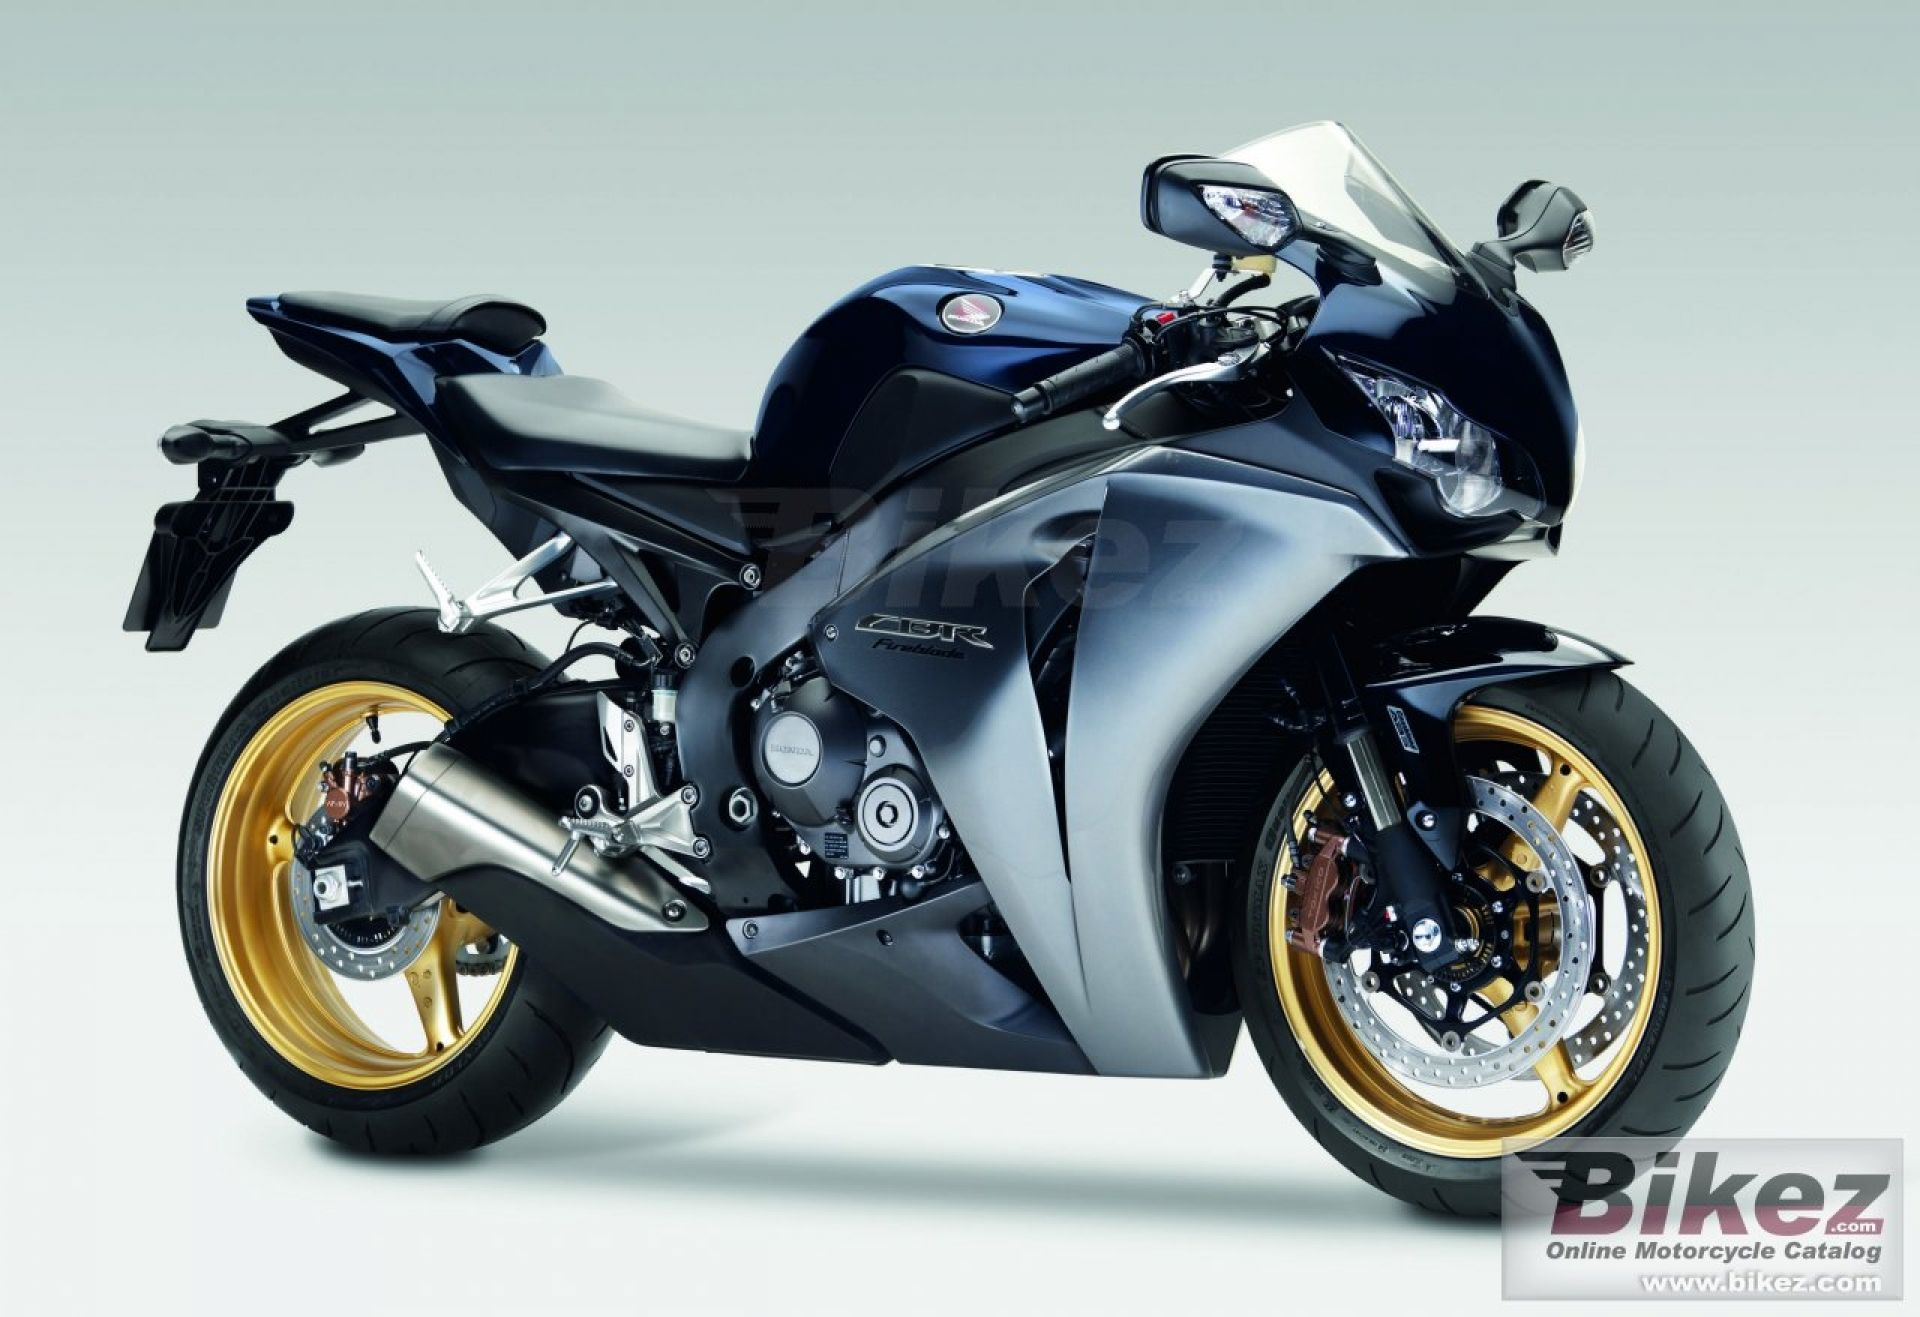 Luxury Motorcycles Honda Cbr 400 R Rr New Motorcycles Galleries 2